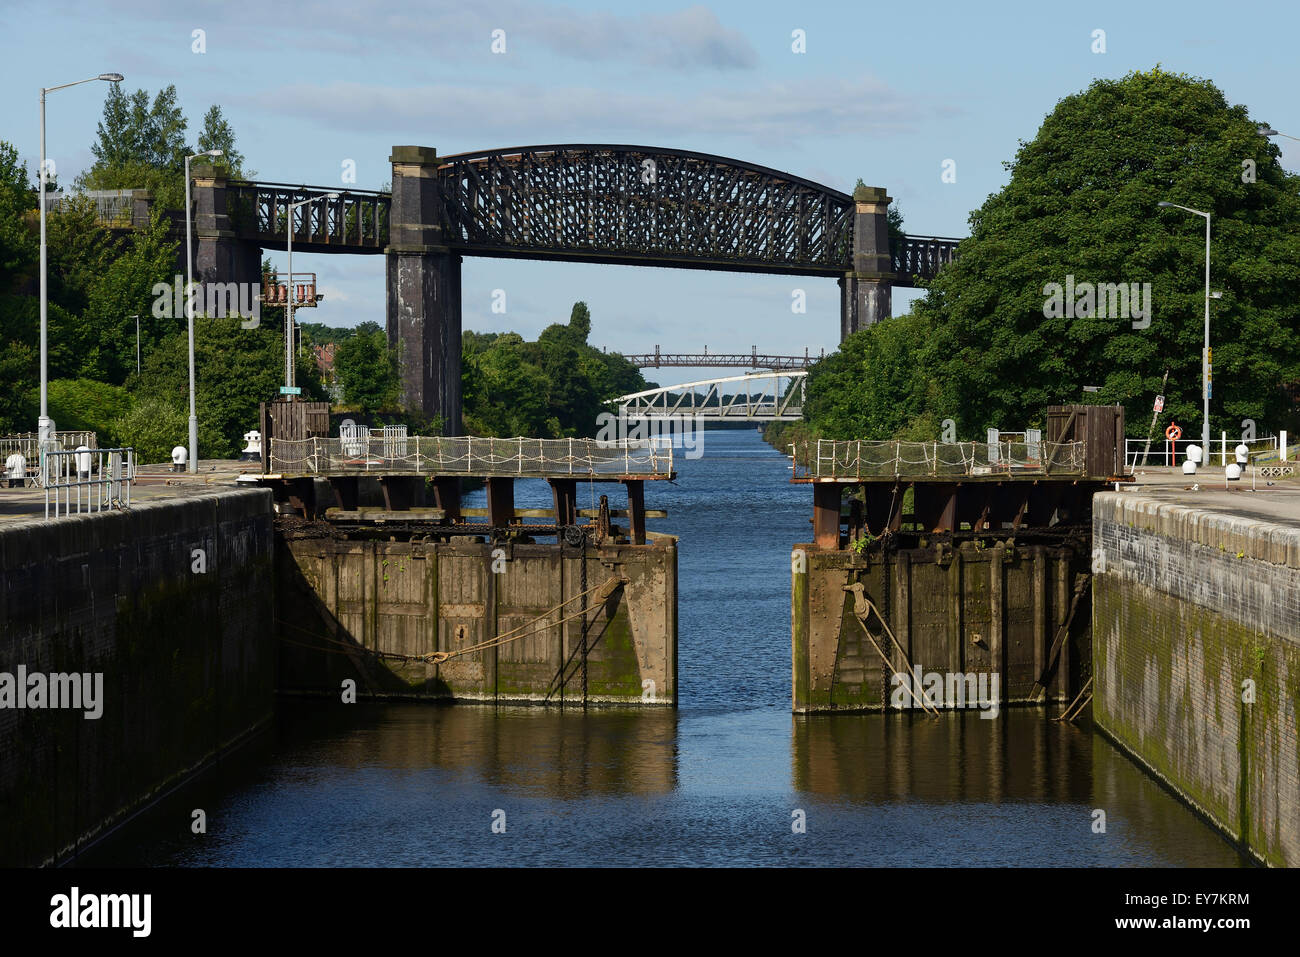 Latchford Locks and the disused Latchford Railway Viaduct crossing the Manchester Ship Canal in Latchford Warrington - Stock Image